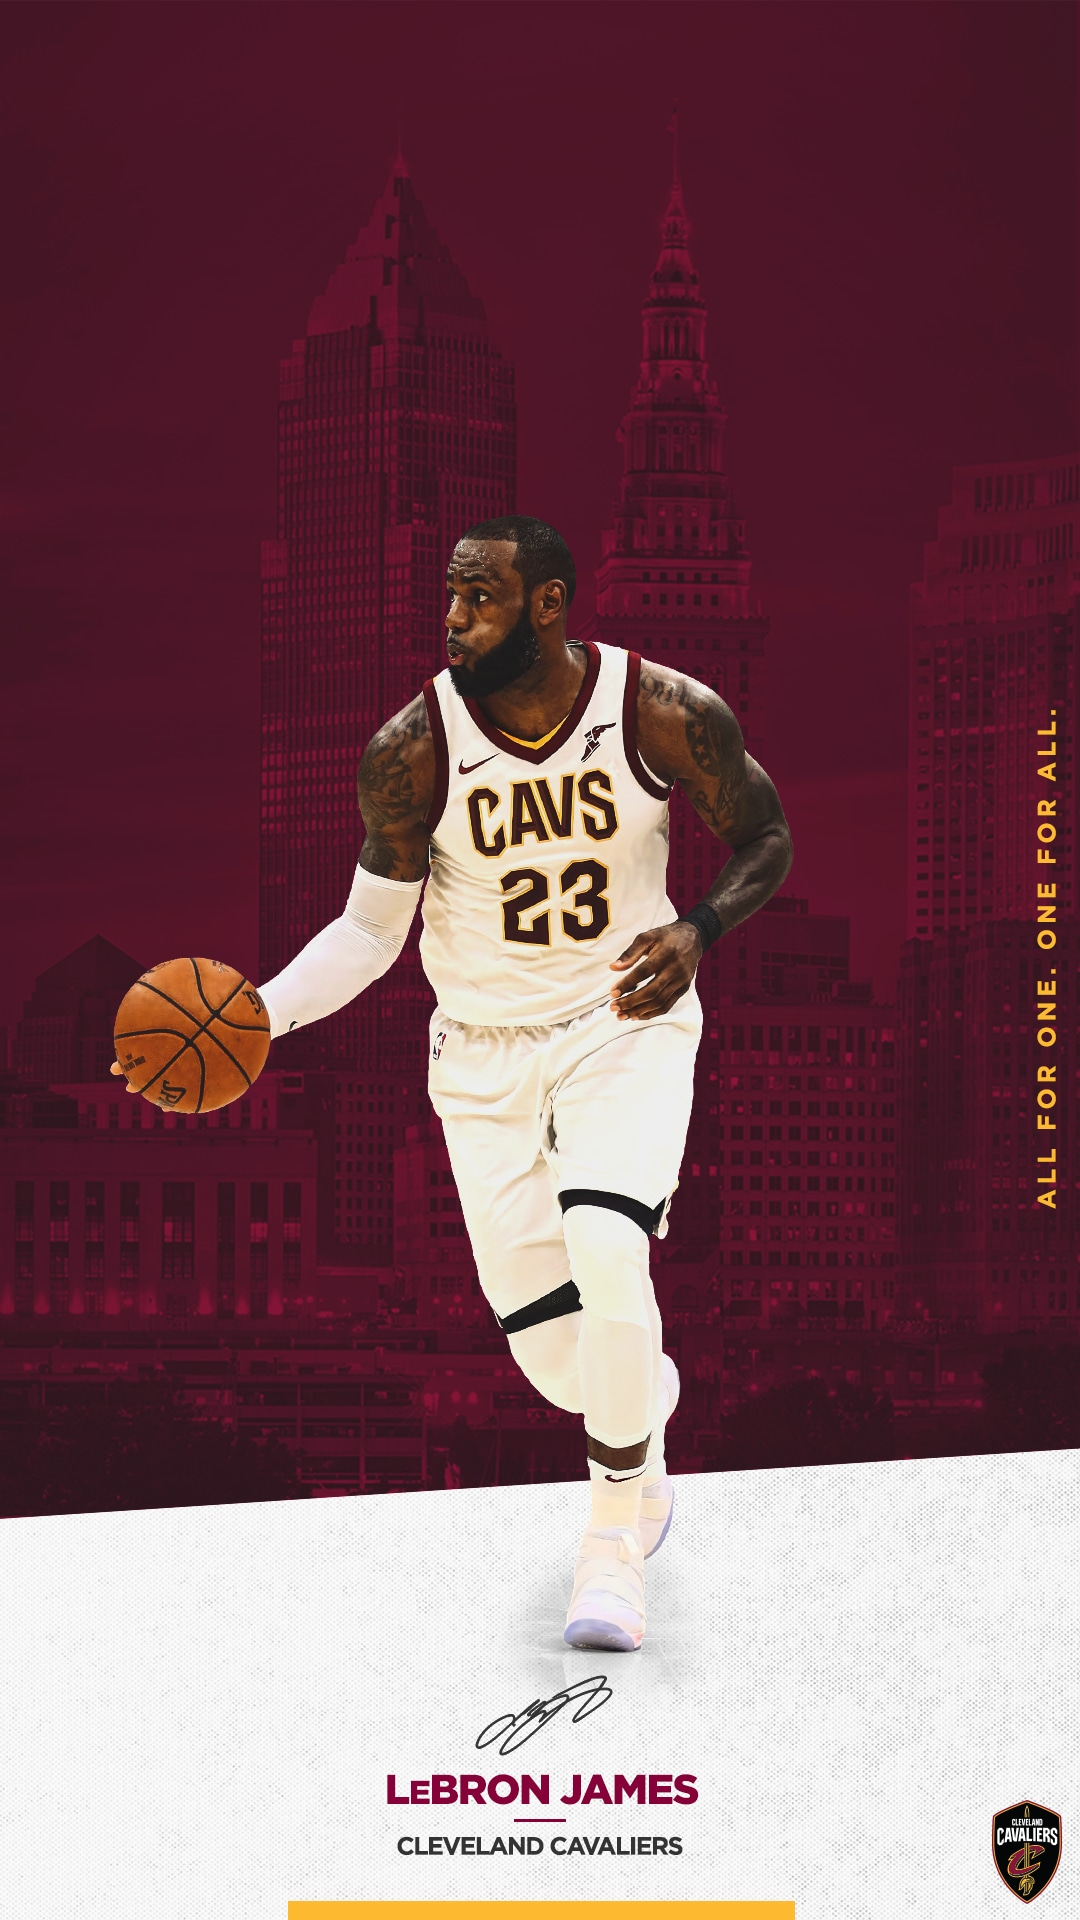 Lebron James Cleveland Cavaliers Wallpaper